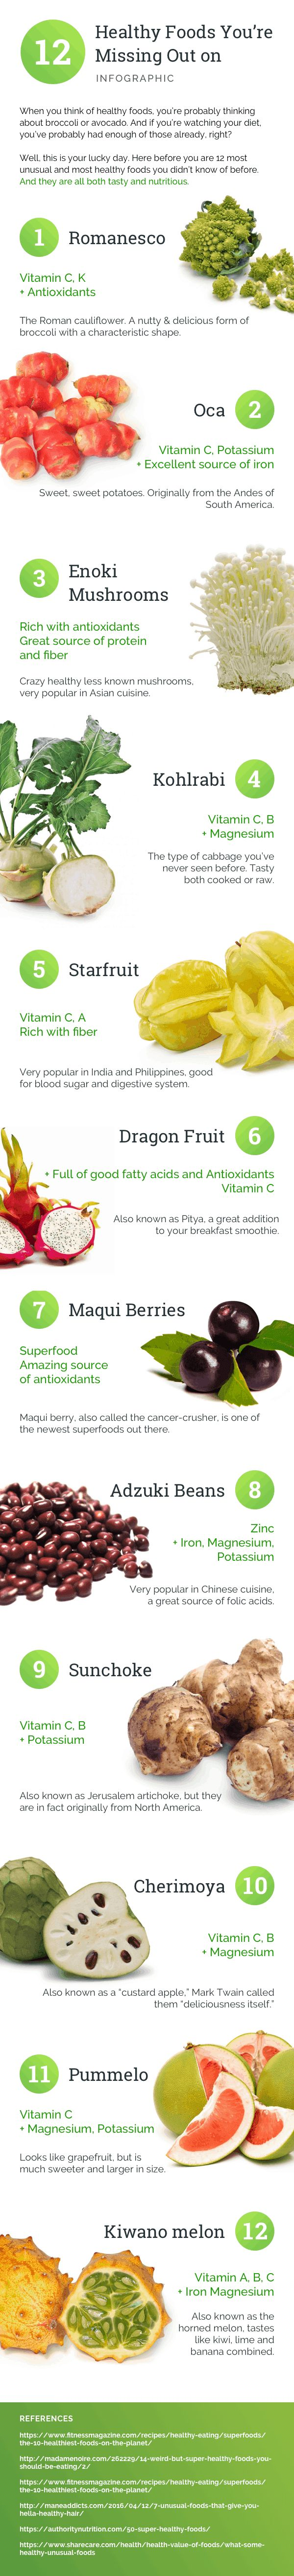 12 Healthy foods you're missing out on  infographic